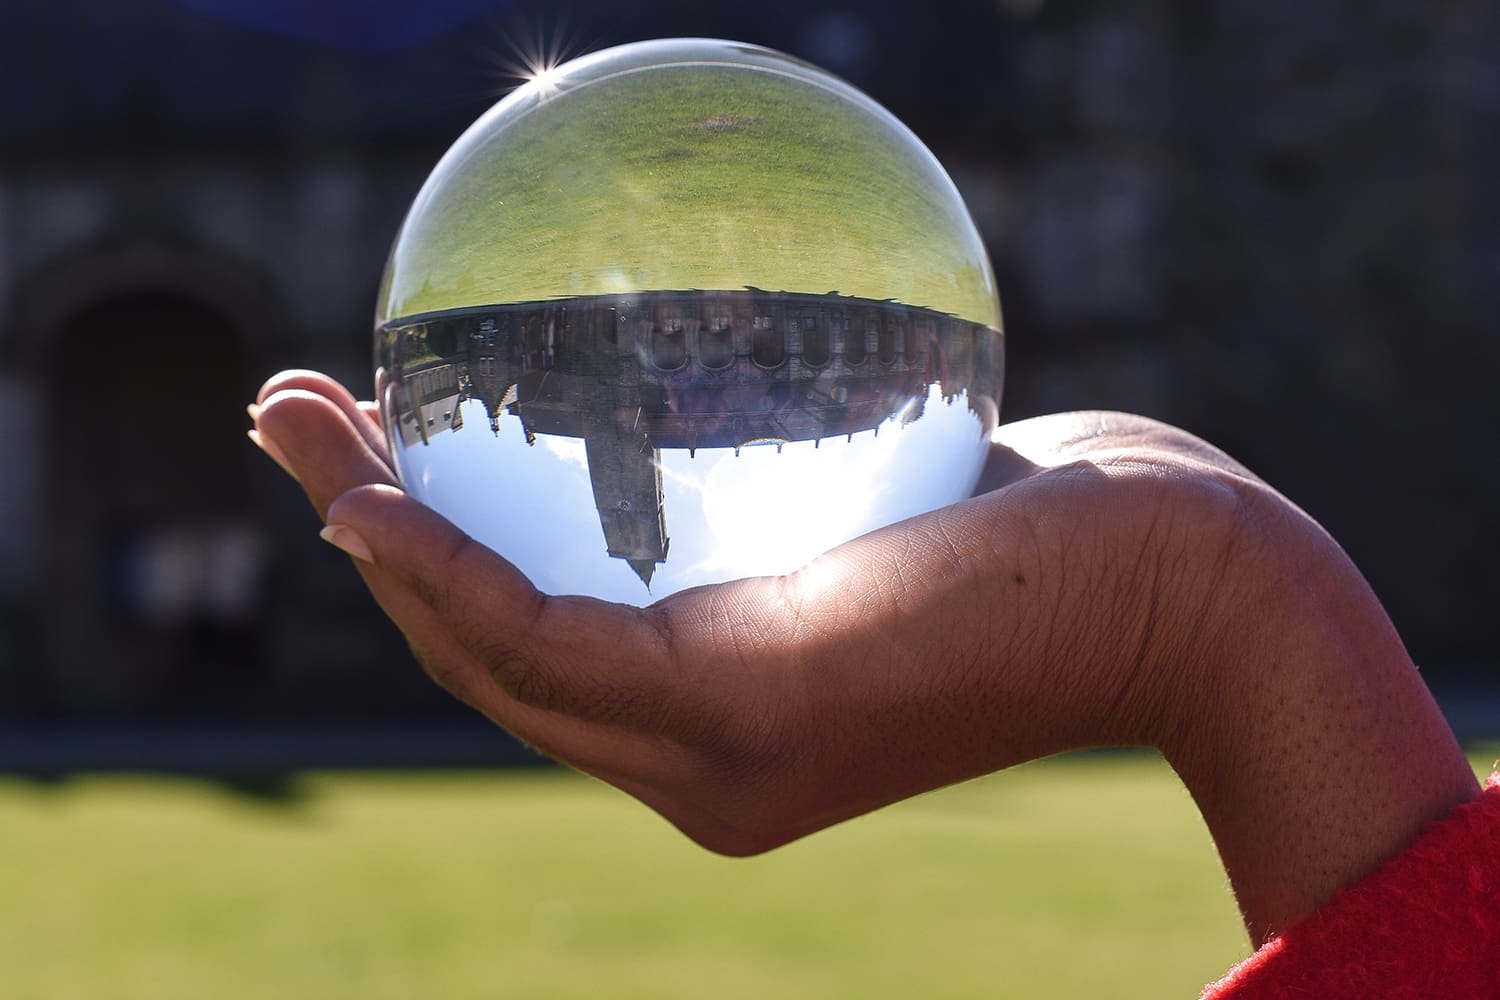 Glass ball photograph of St Andrews